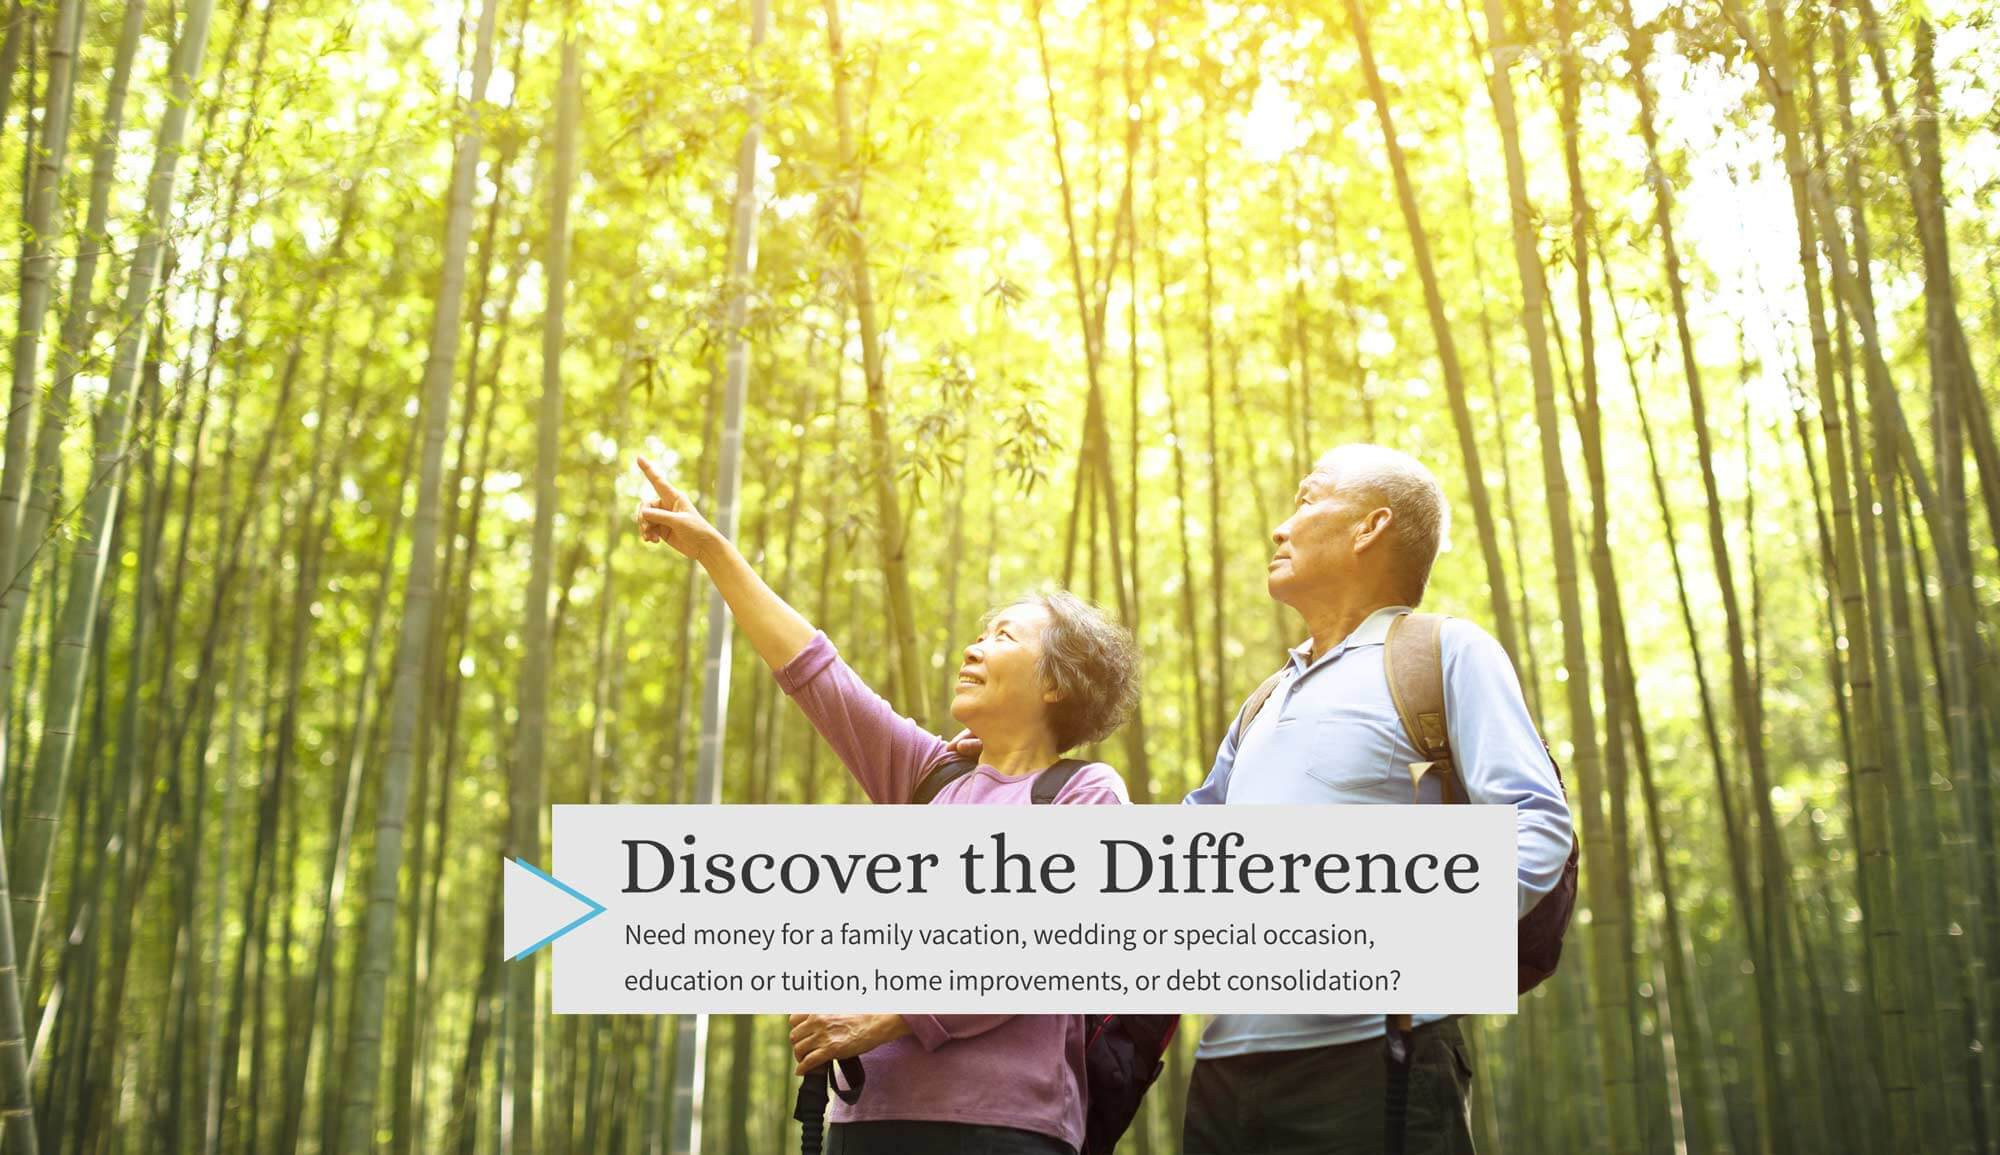 Discover the Difference. Need money for a family vacation, wedding or special occasion, education or tuition, home improvements, or debt consolidation?